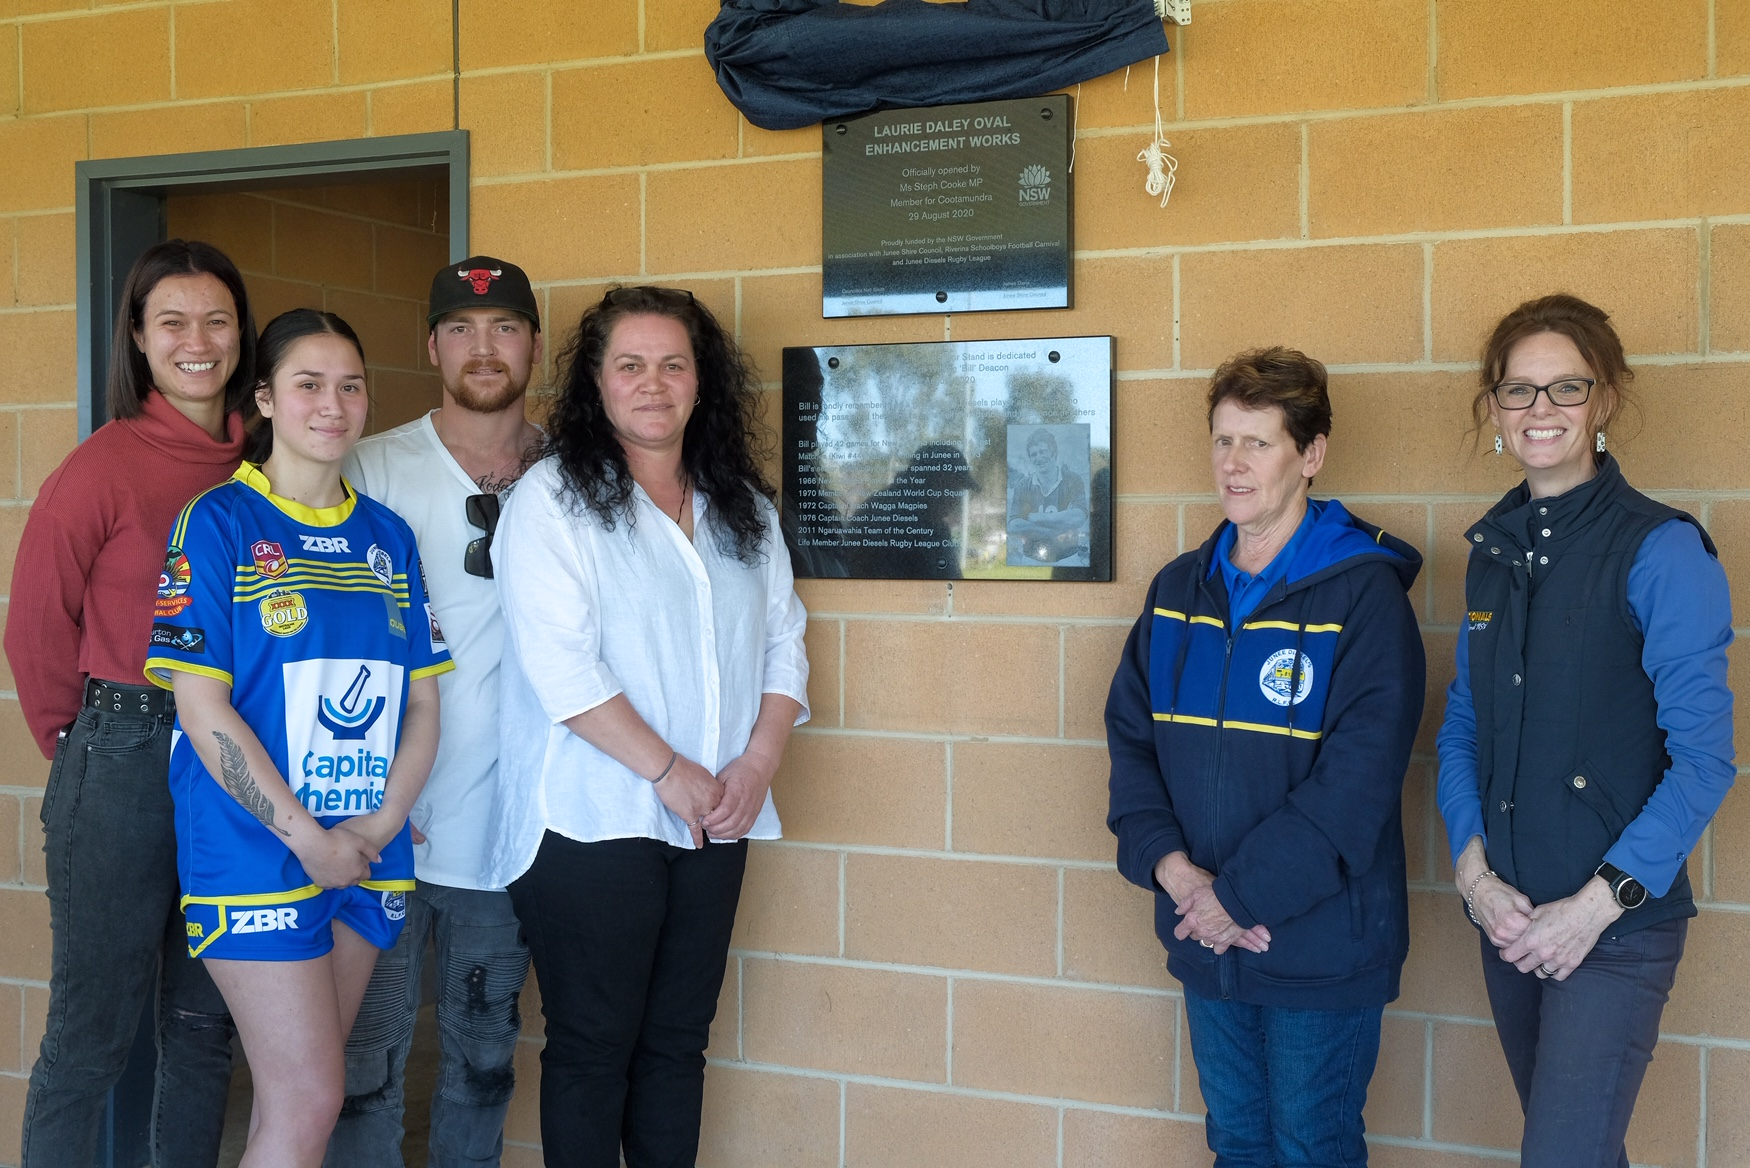 Billie Deacon, Maddy Deacon, Matt Logan, Lyandra Logan, Noreen Deacon and Steph Cooke MP in front of a brand new plaque on the new amenities building.